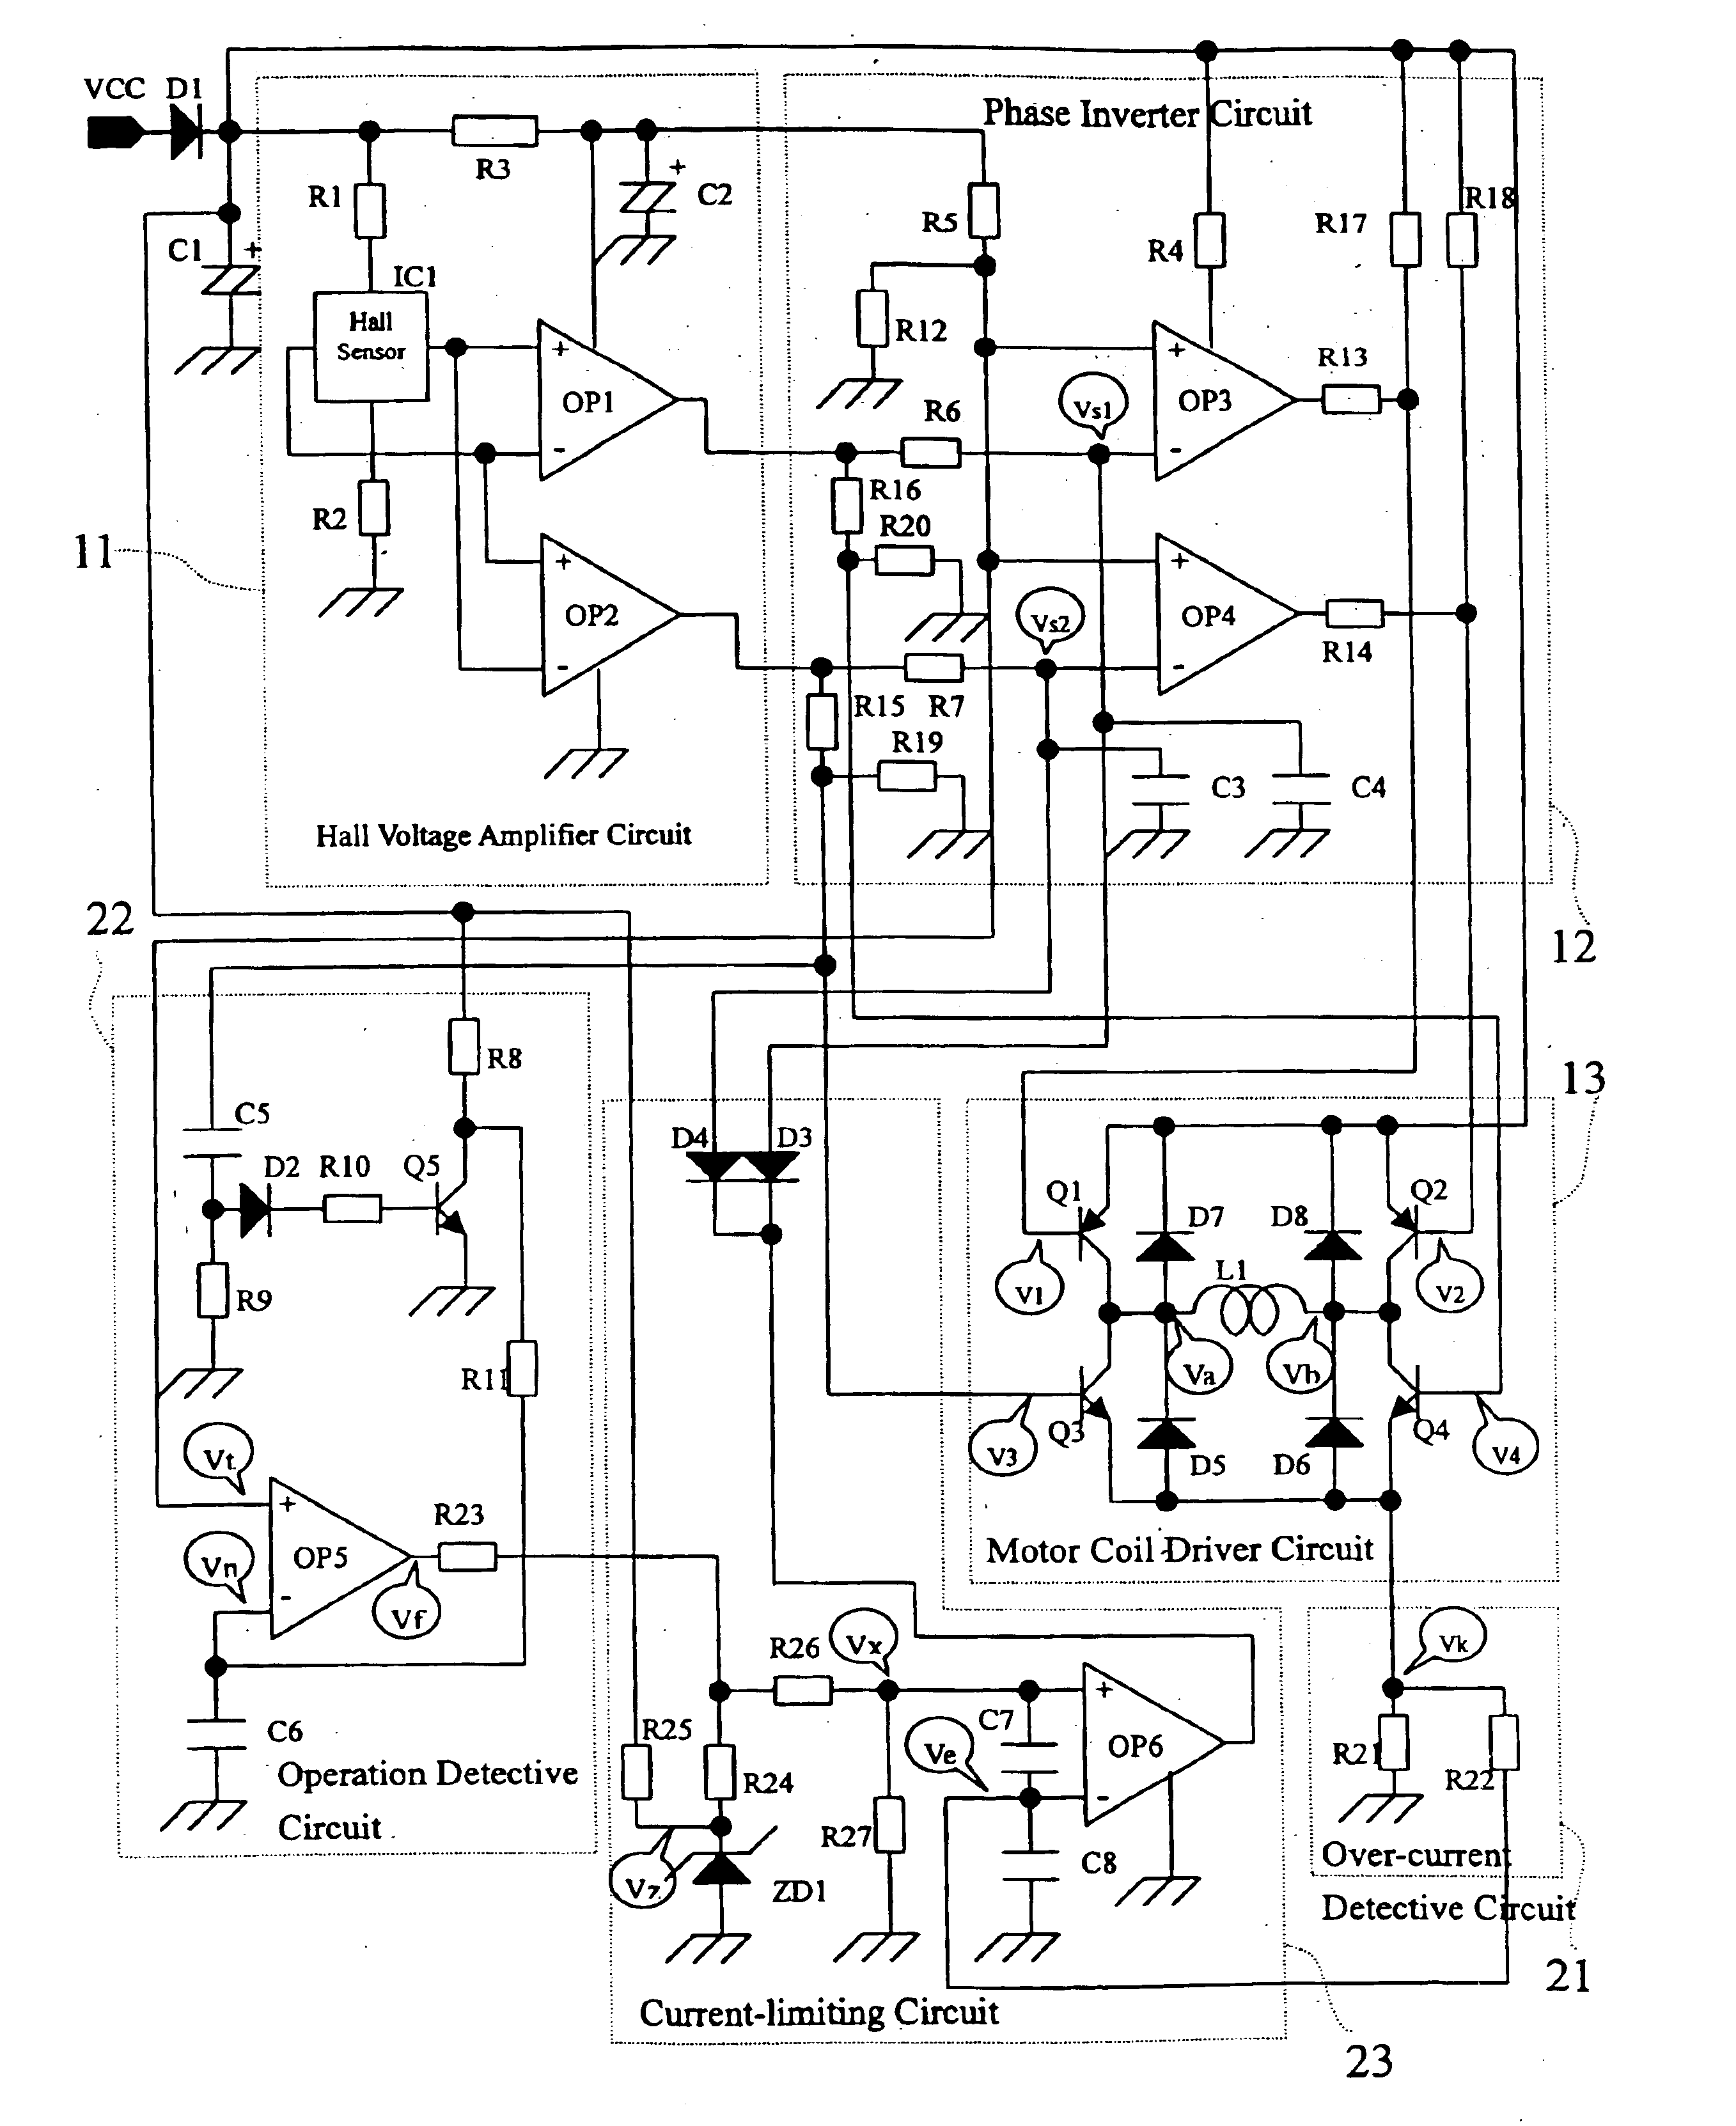 Patent Us6741047 Dual Current Limiting Circuit For Dc Brushless Brushlessmotordiagrampng Drawing